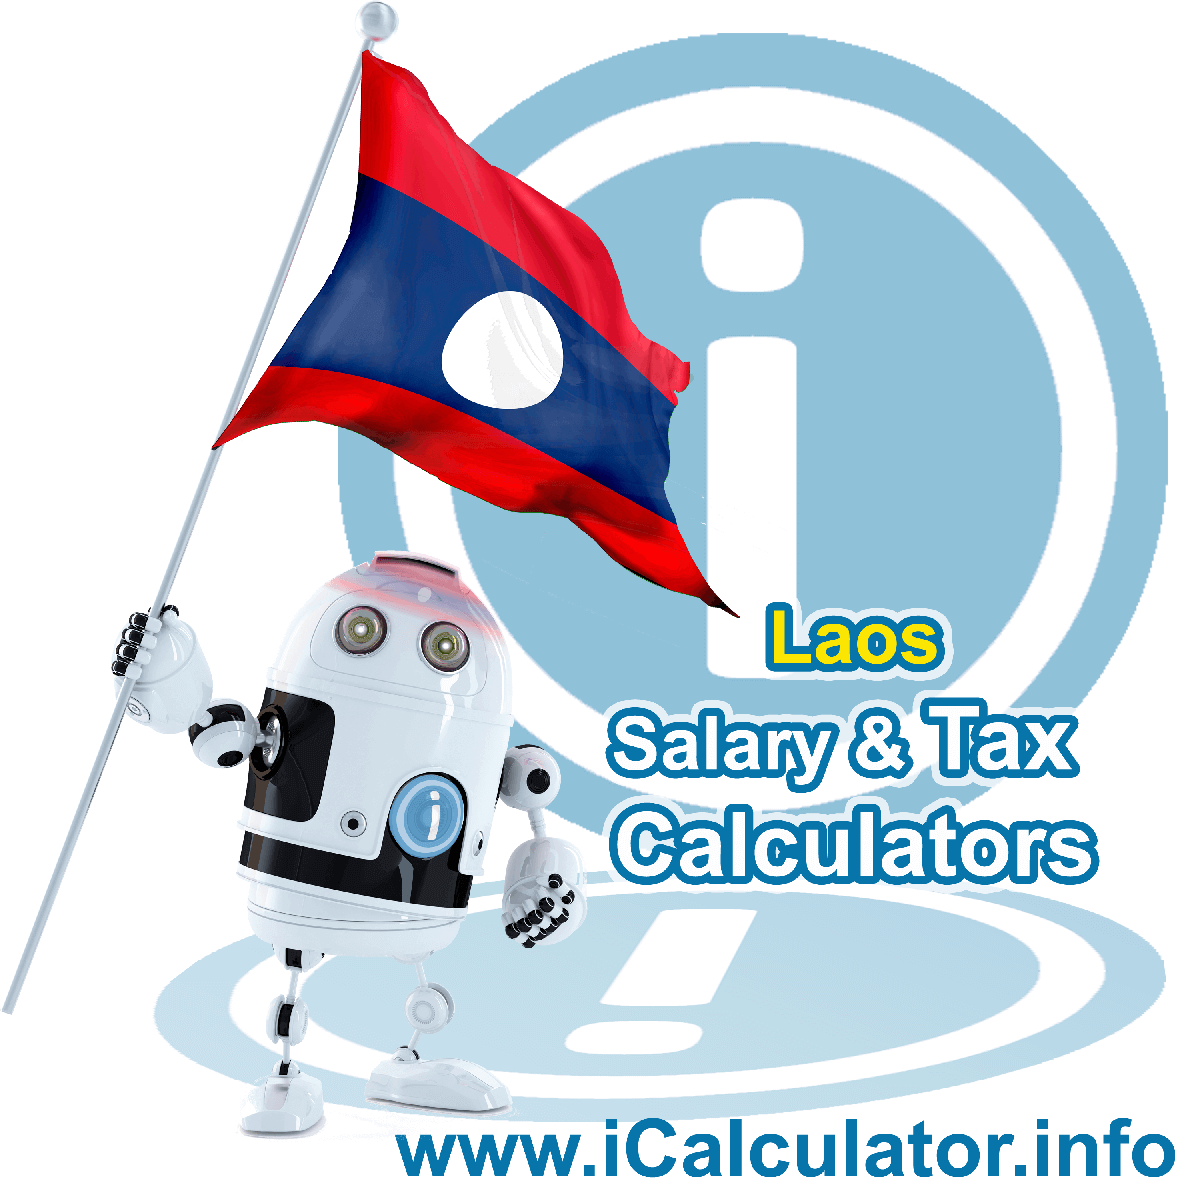 Lao Wage Calculator. This image shows the Lao flag and information relating to the tax formula for the Lao Tax Calculator